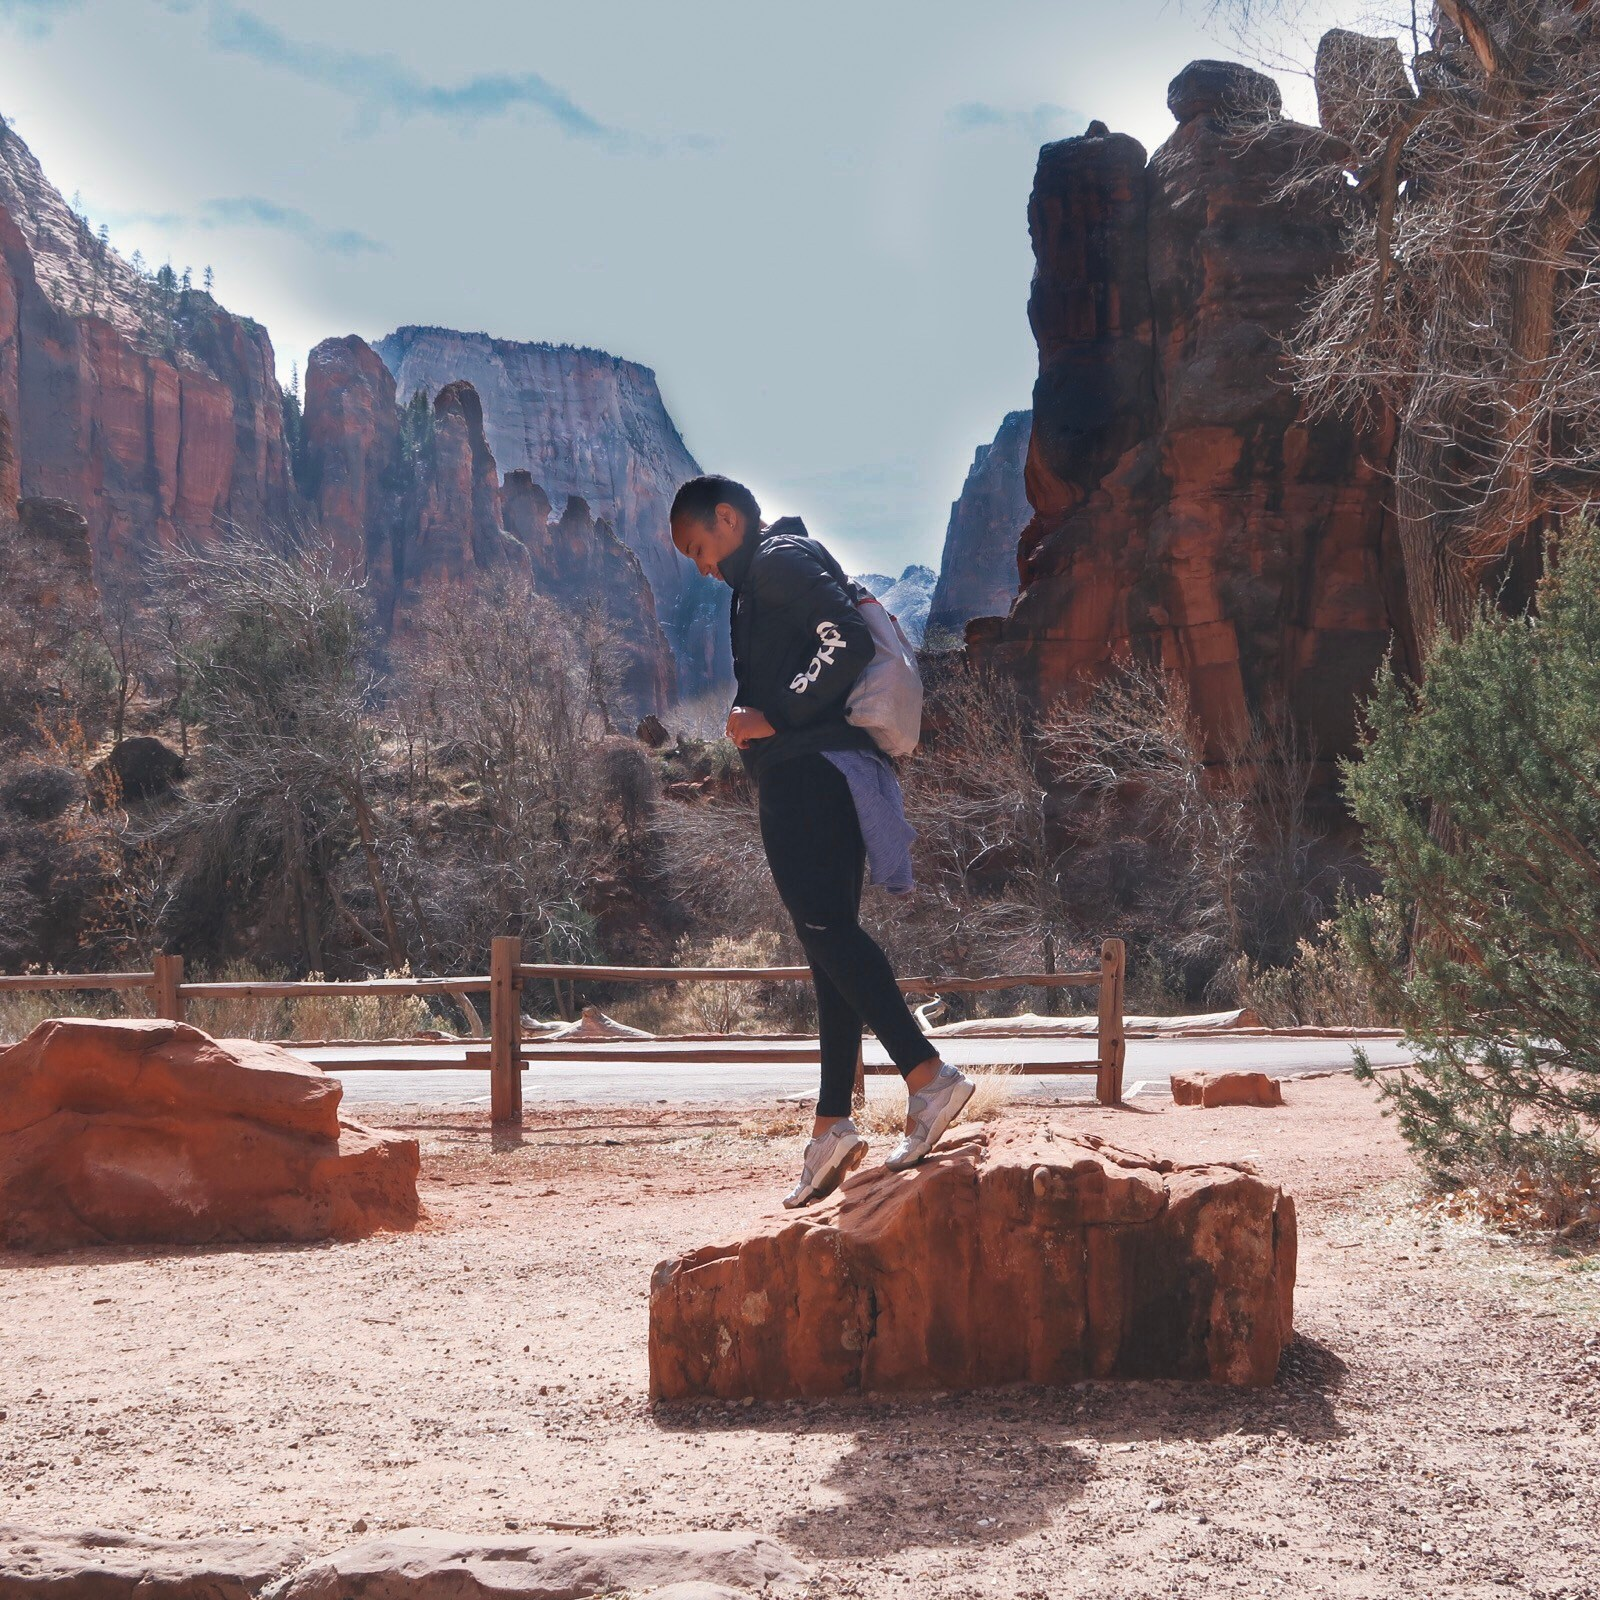 Illustrated by Sade - Woman taking a photo at Zion National Park